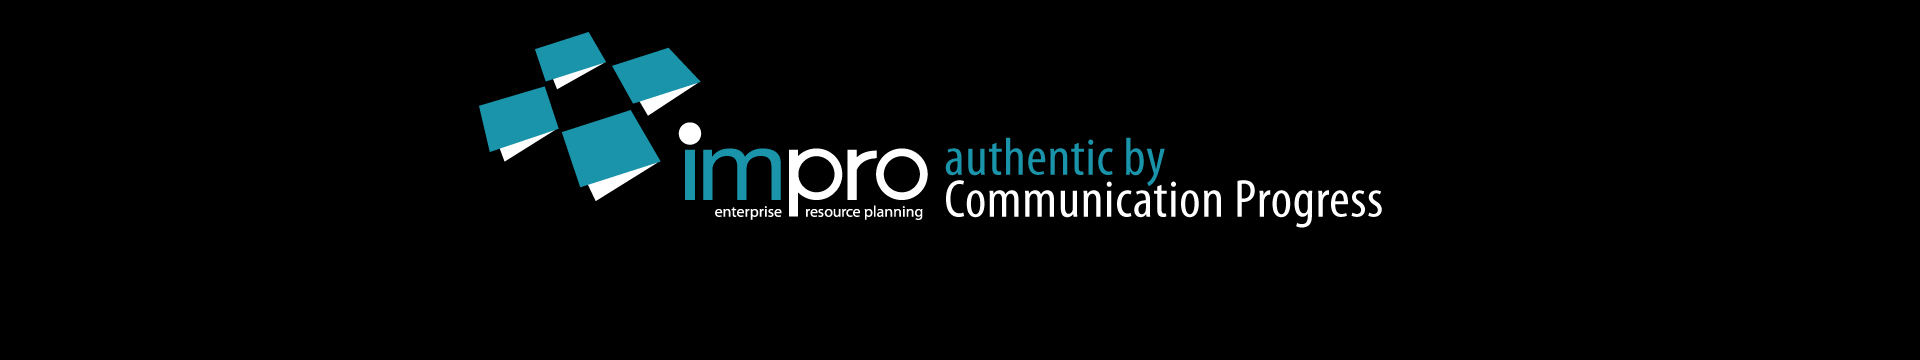 Impro authentic by commprog